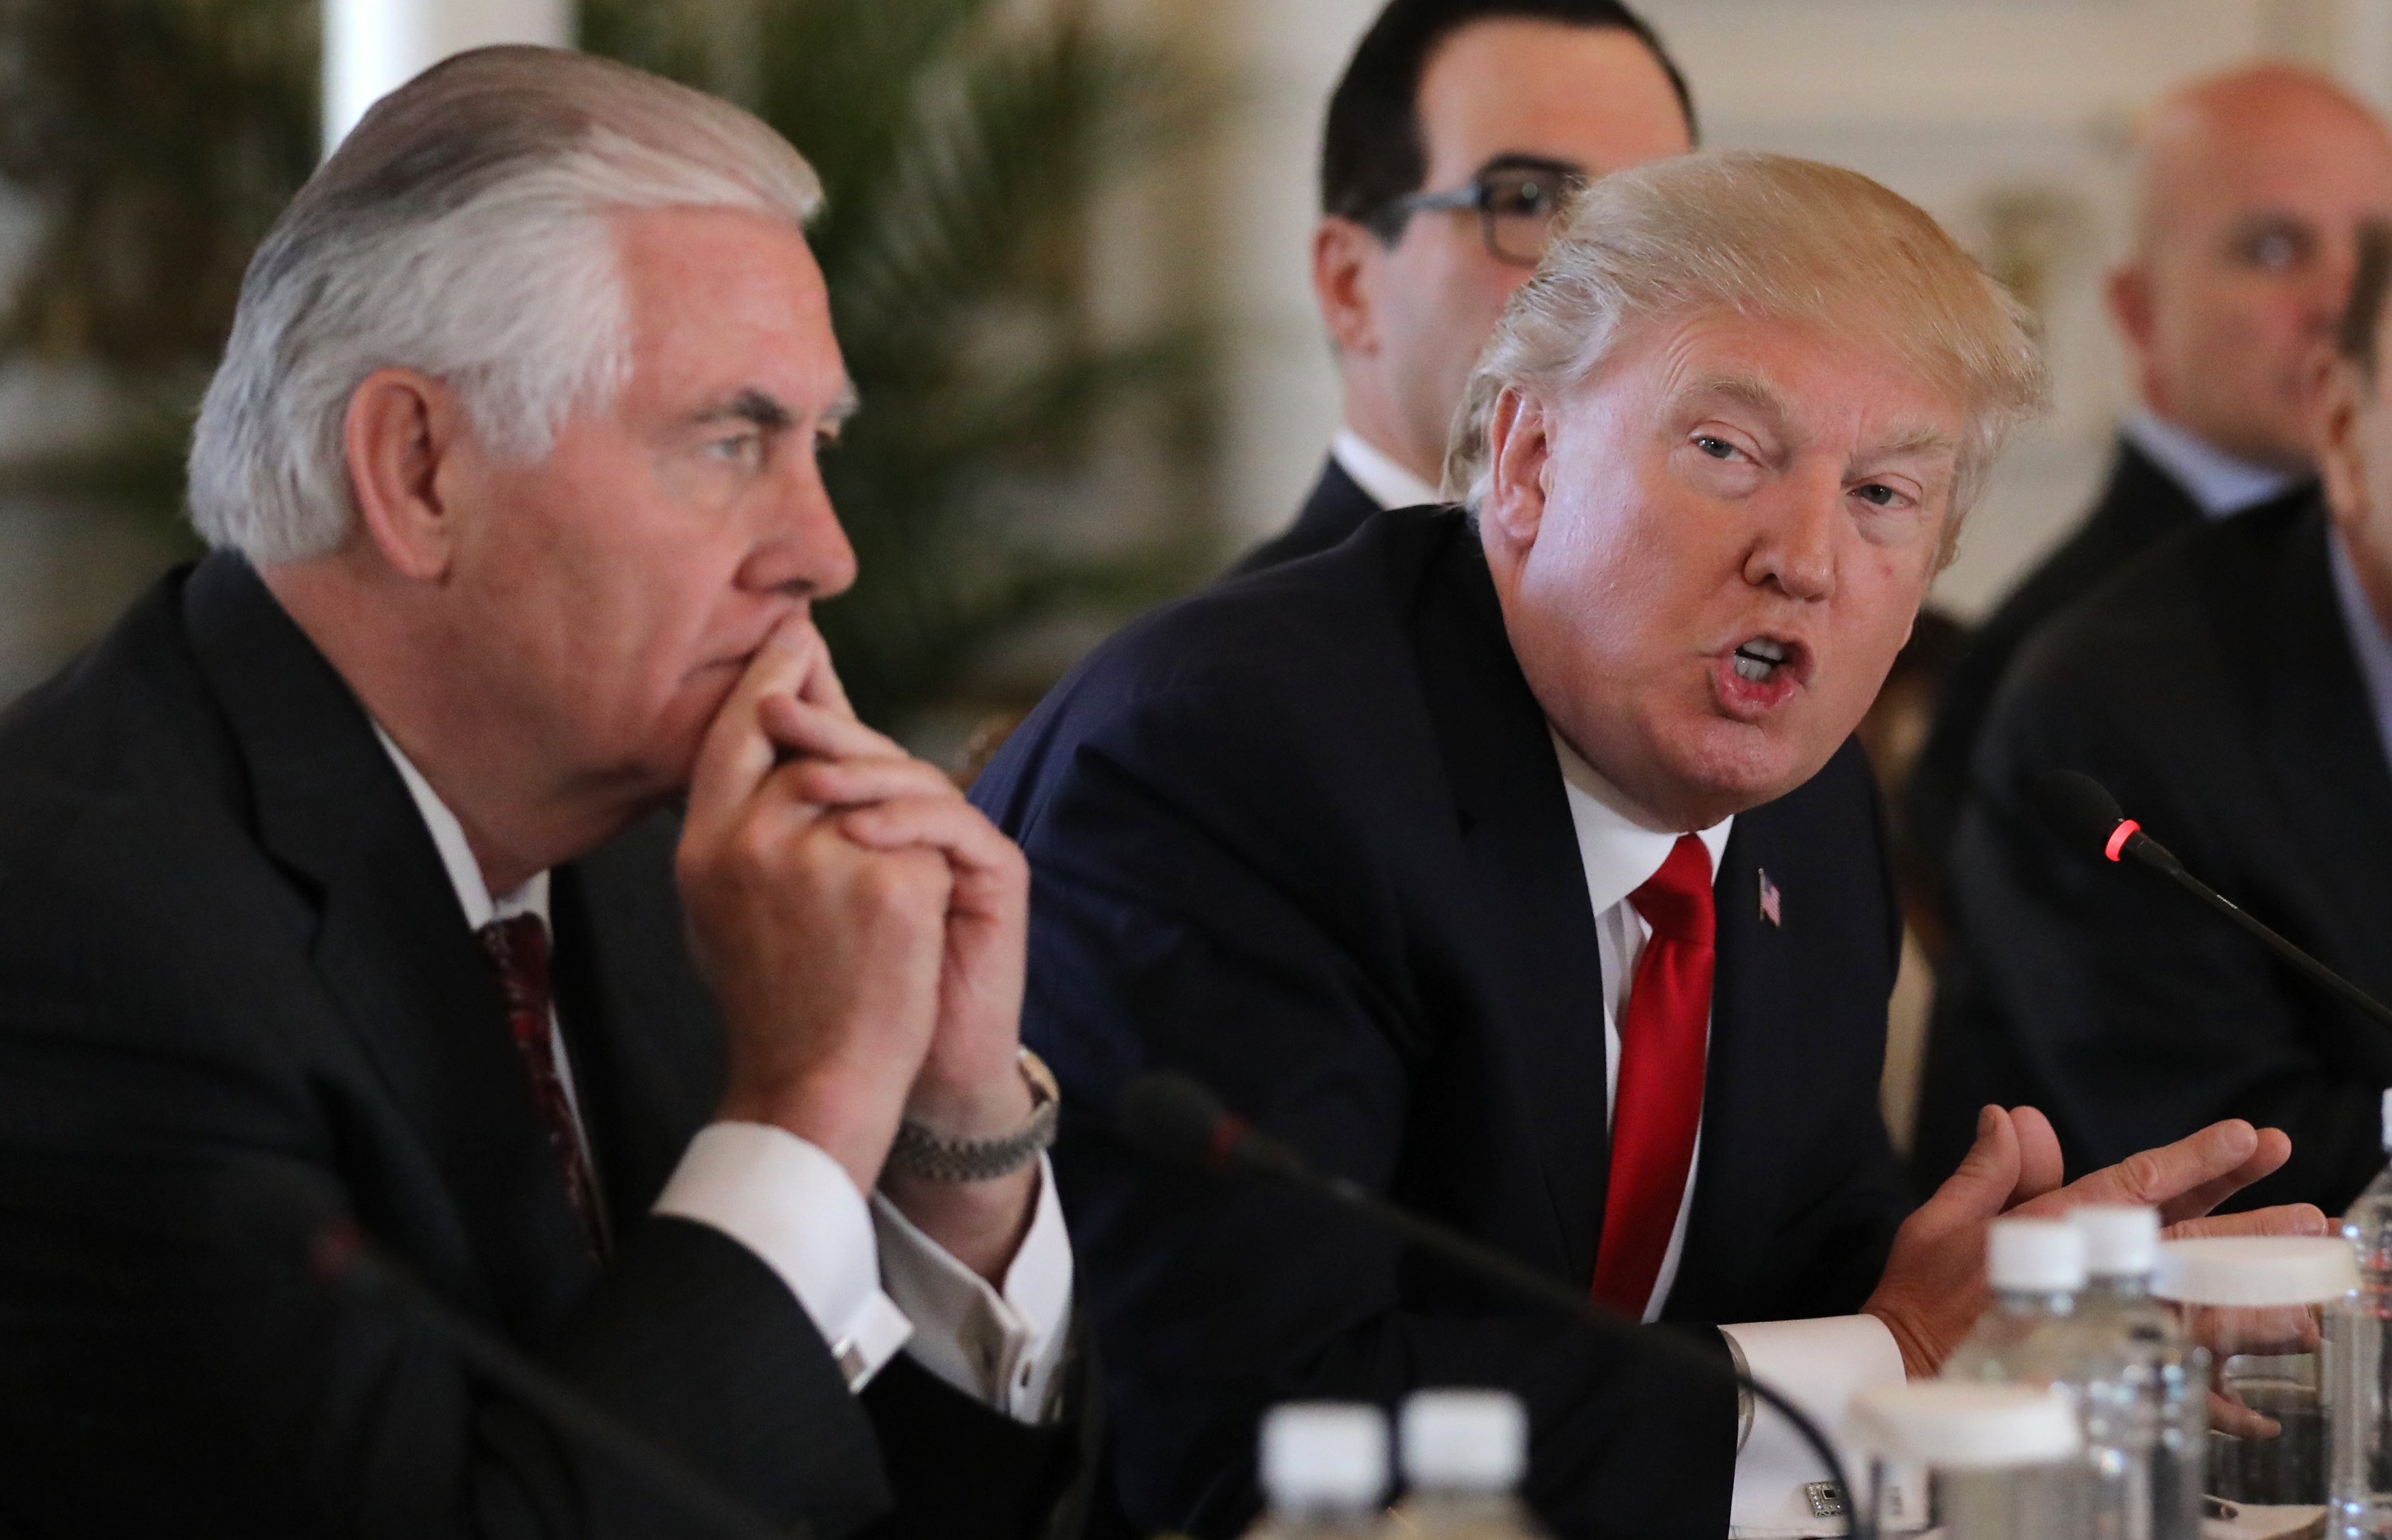 Dan Proft Cuts Through the Hype on Trump's Military Action in Syria